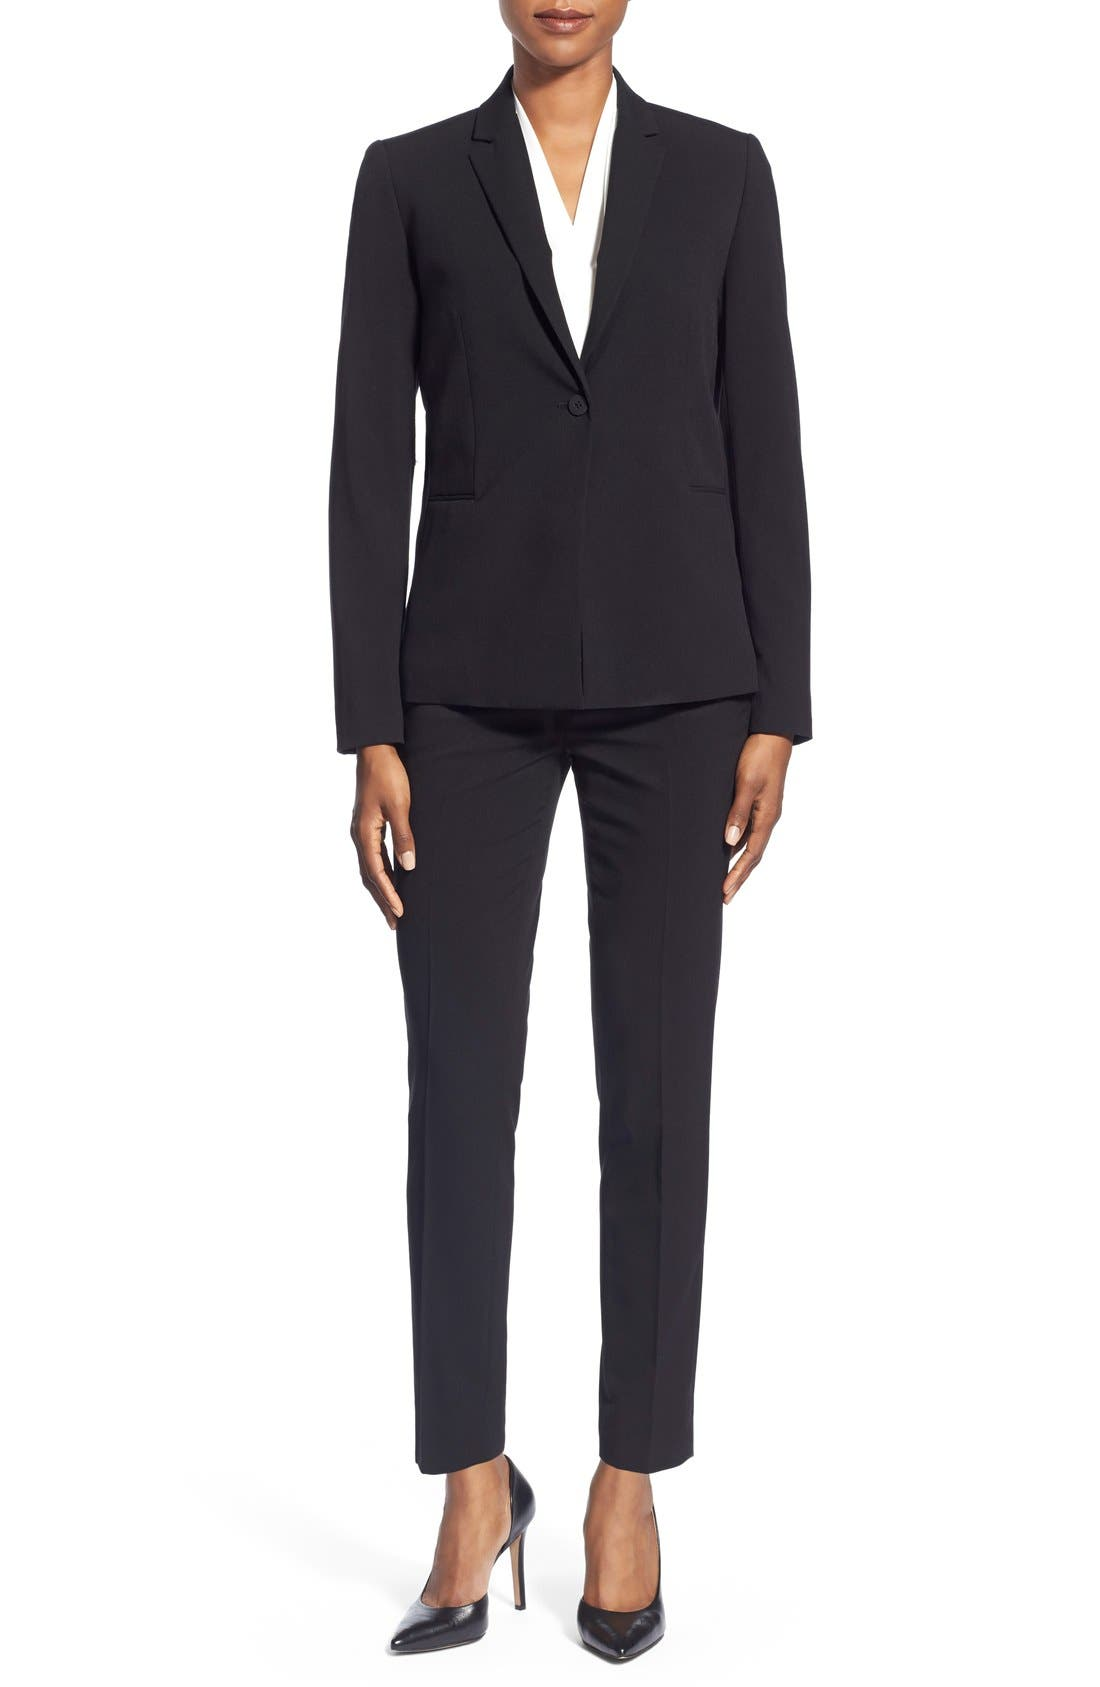 T Tahari Jacket, Blouse & Ankle Pants